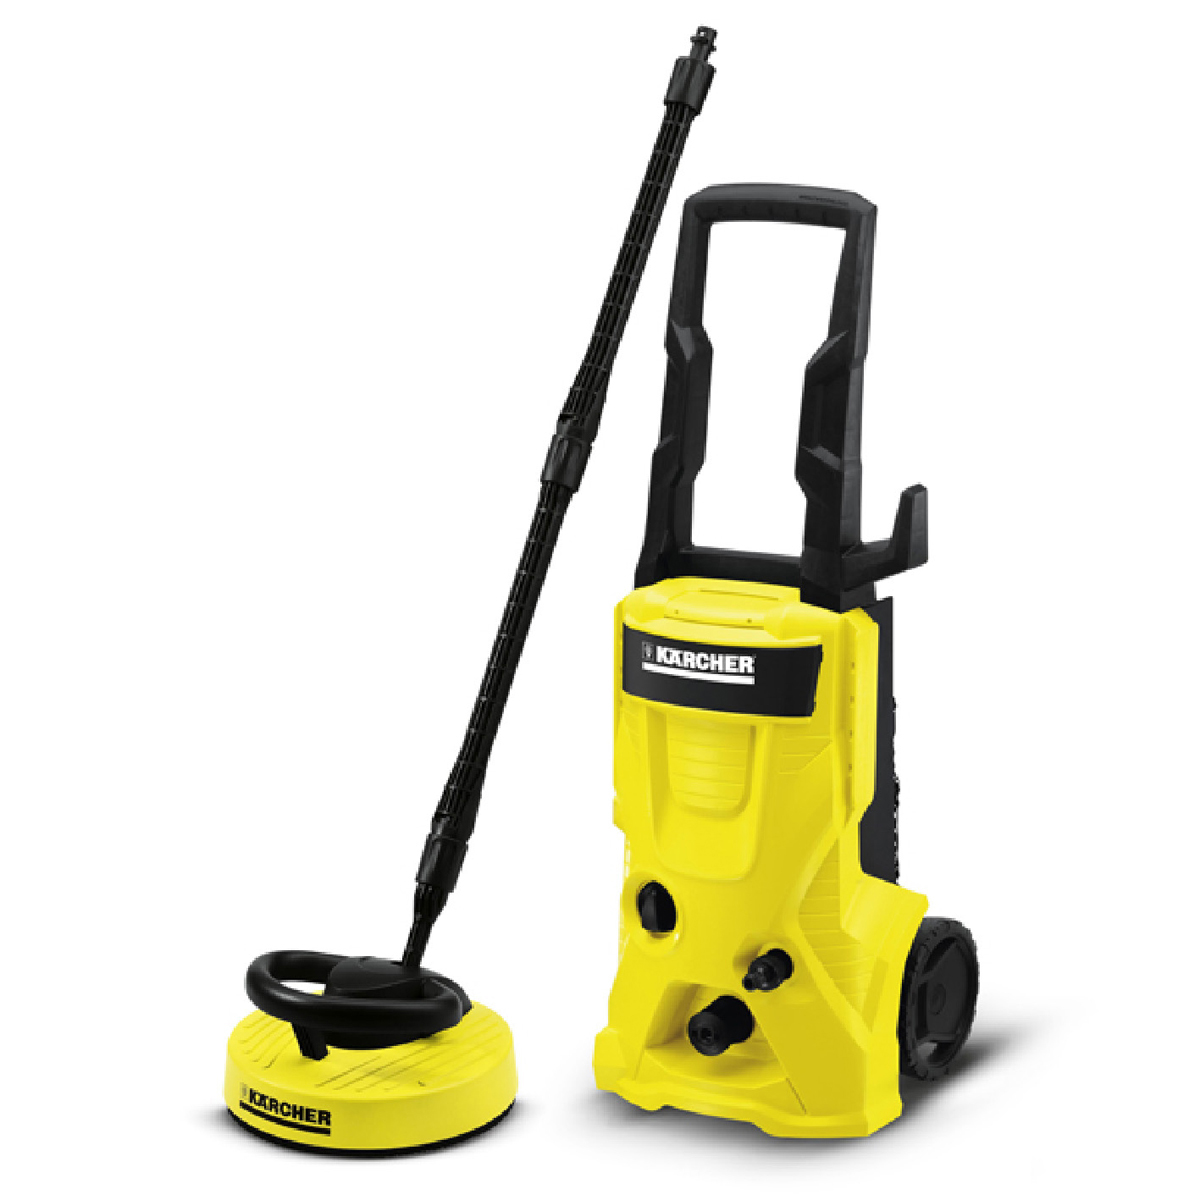 Karcher Pressure Washer K4.600 T200 Enlarged Preview